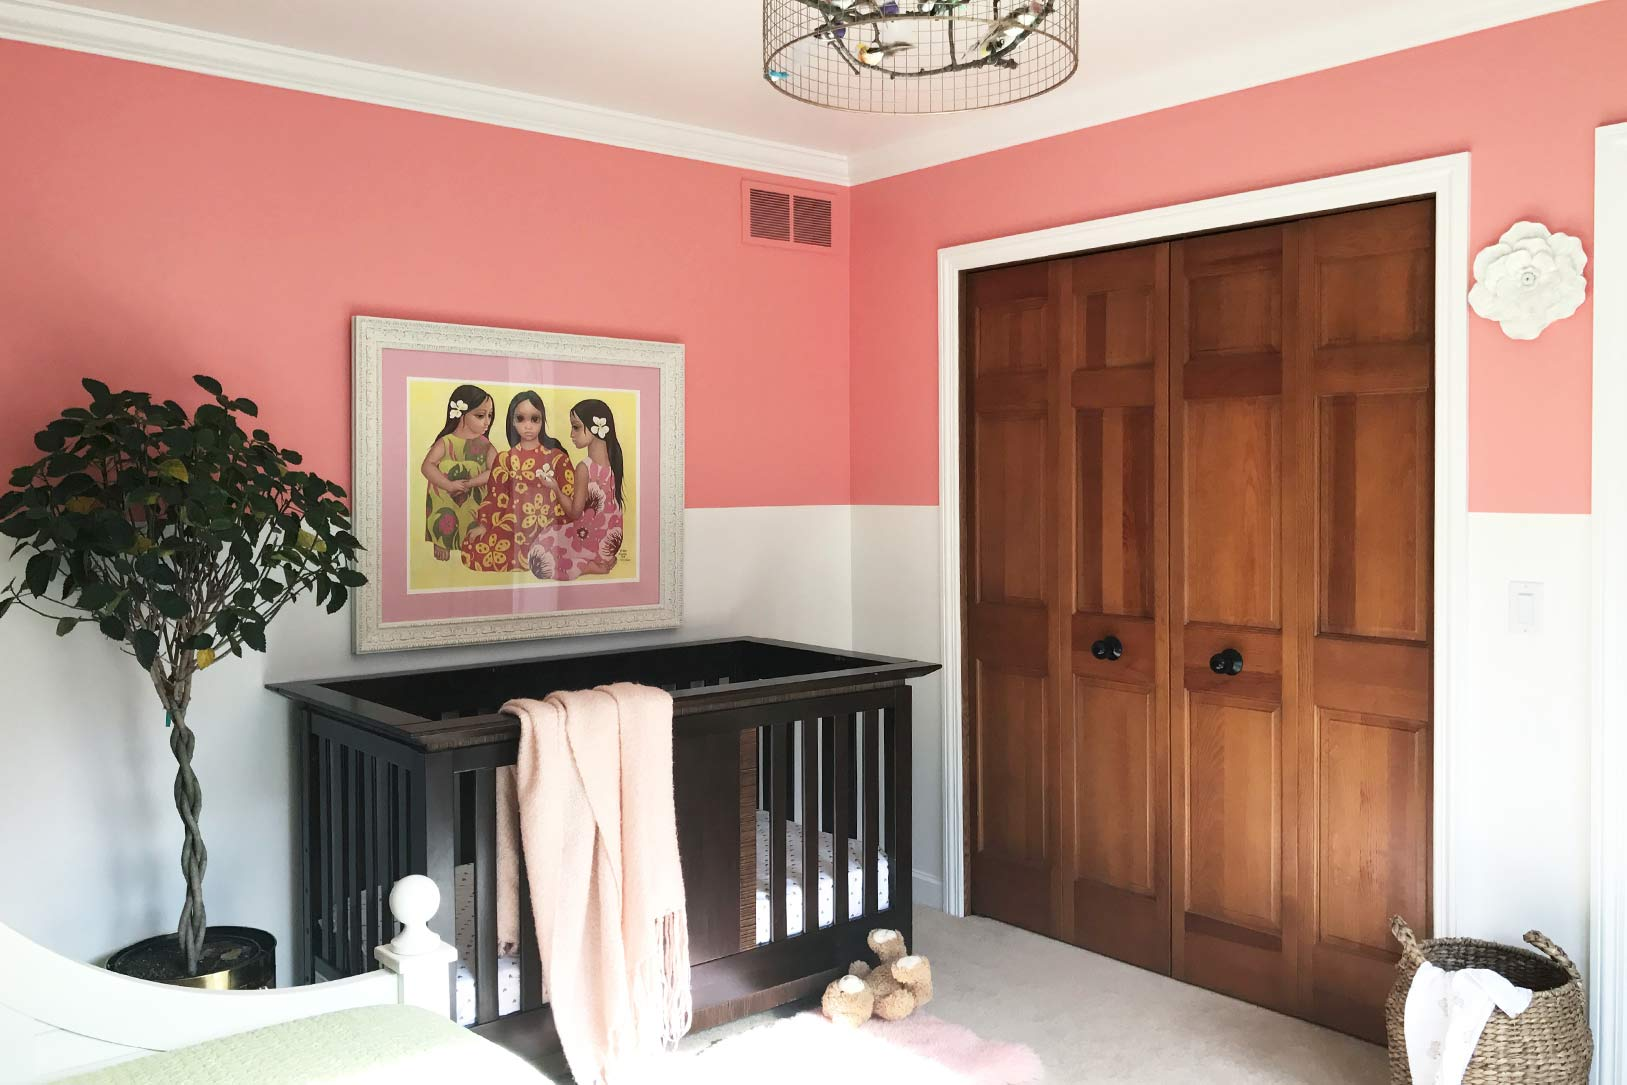 Hand-Painted Walls and Artwork Enriches a Midwestern Family's Home, Design*Sponge